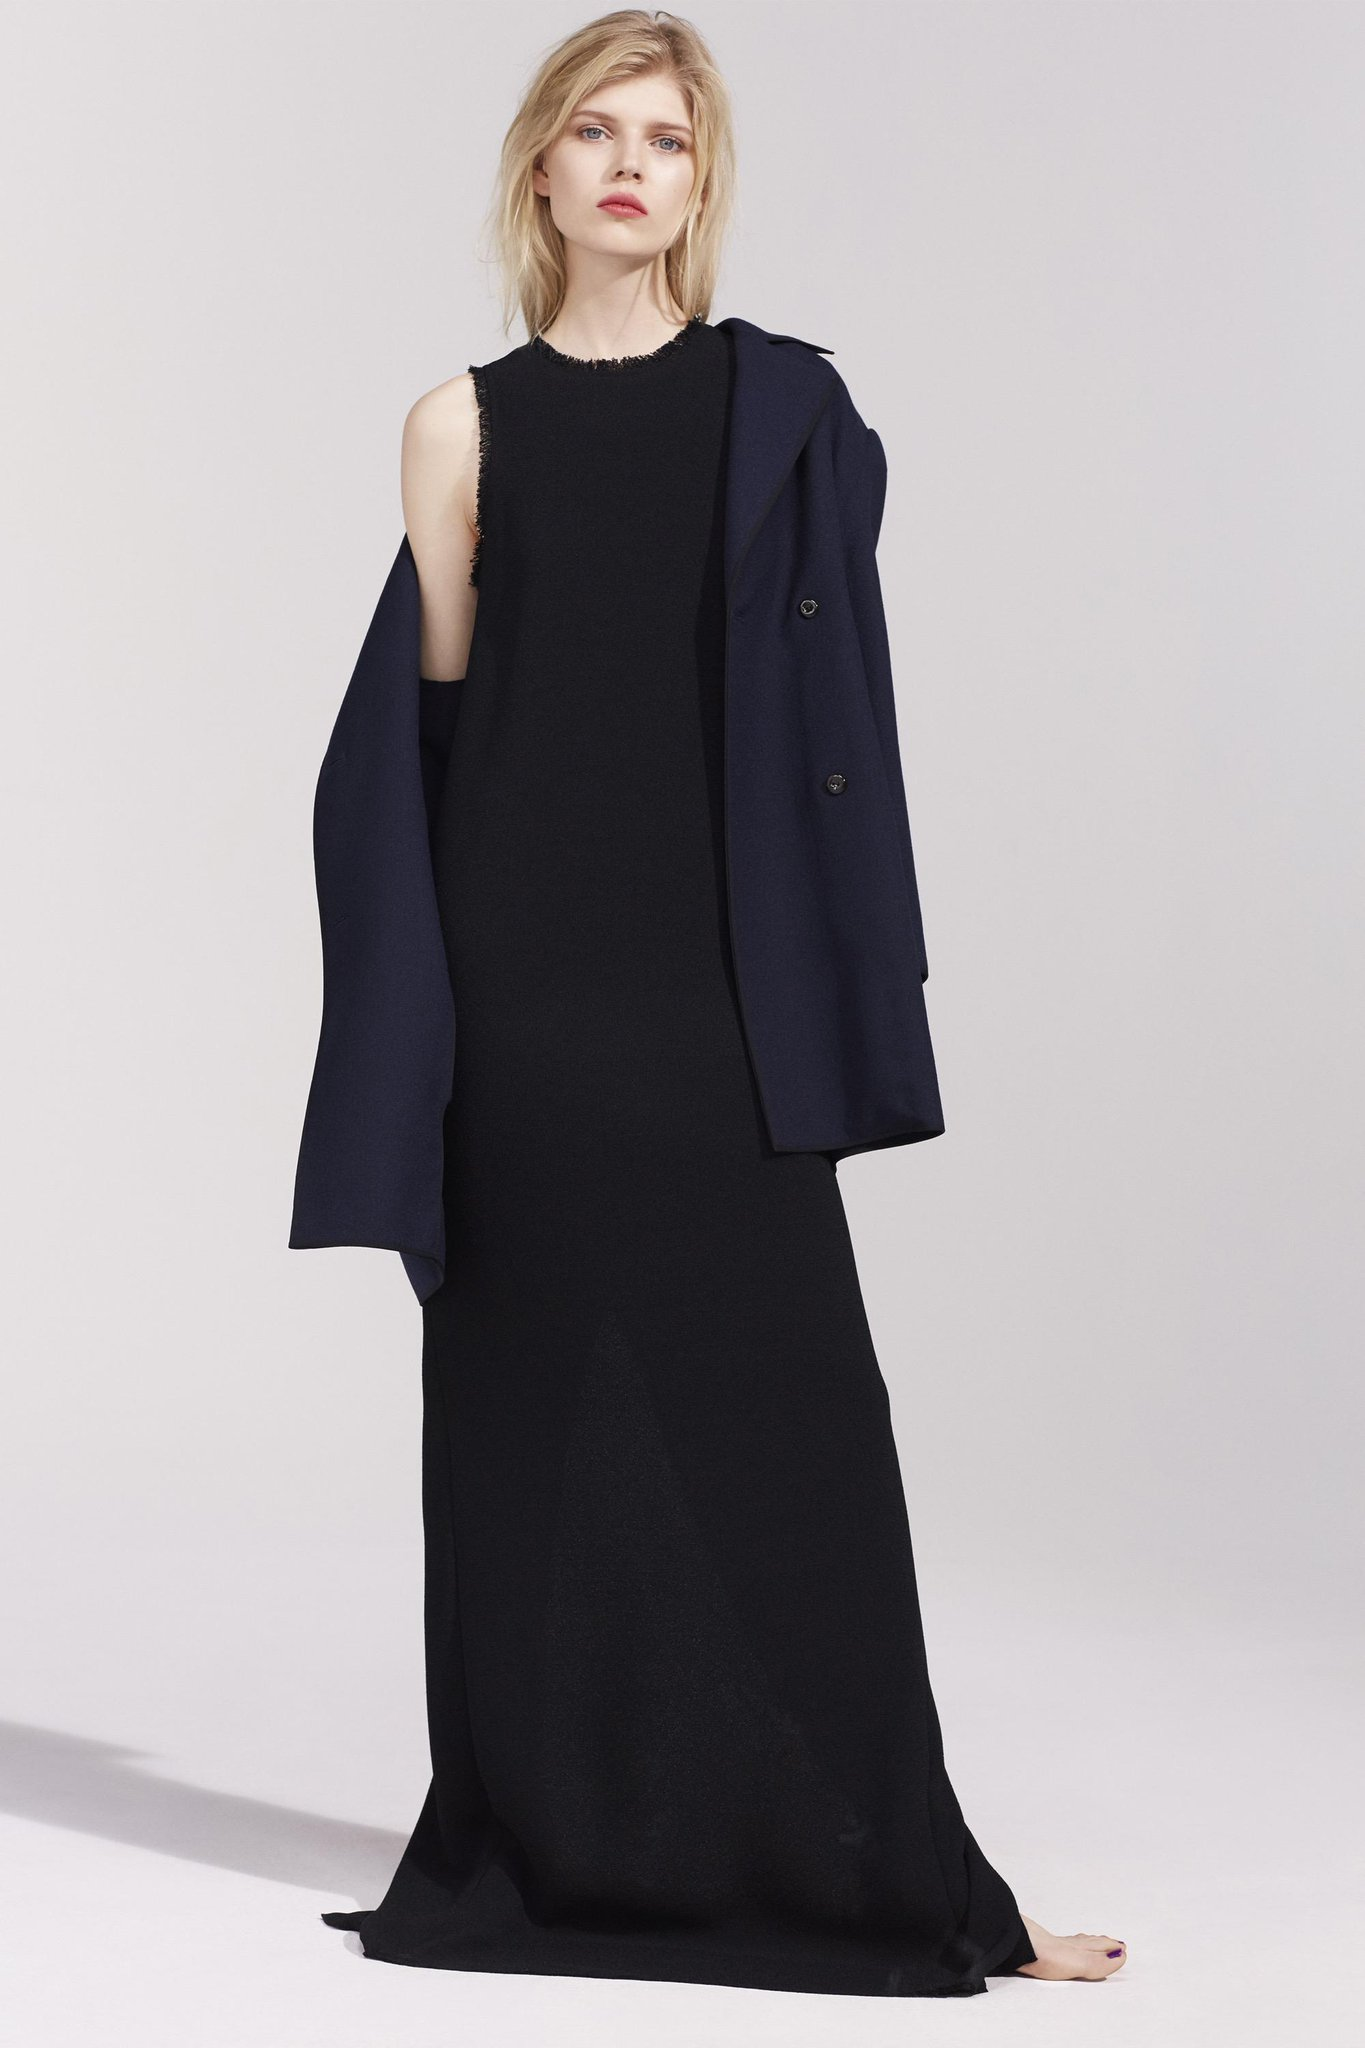 See all the looks from the @NinaRicci #Resort2016 show: http://t.co/4riZv67s9r http://t.co/2TeN1ITLd9